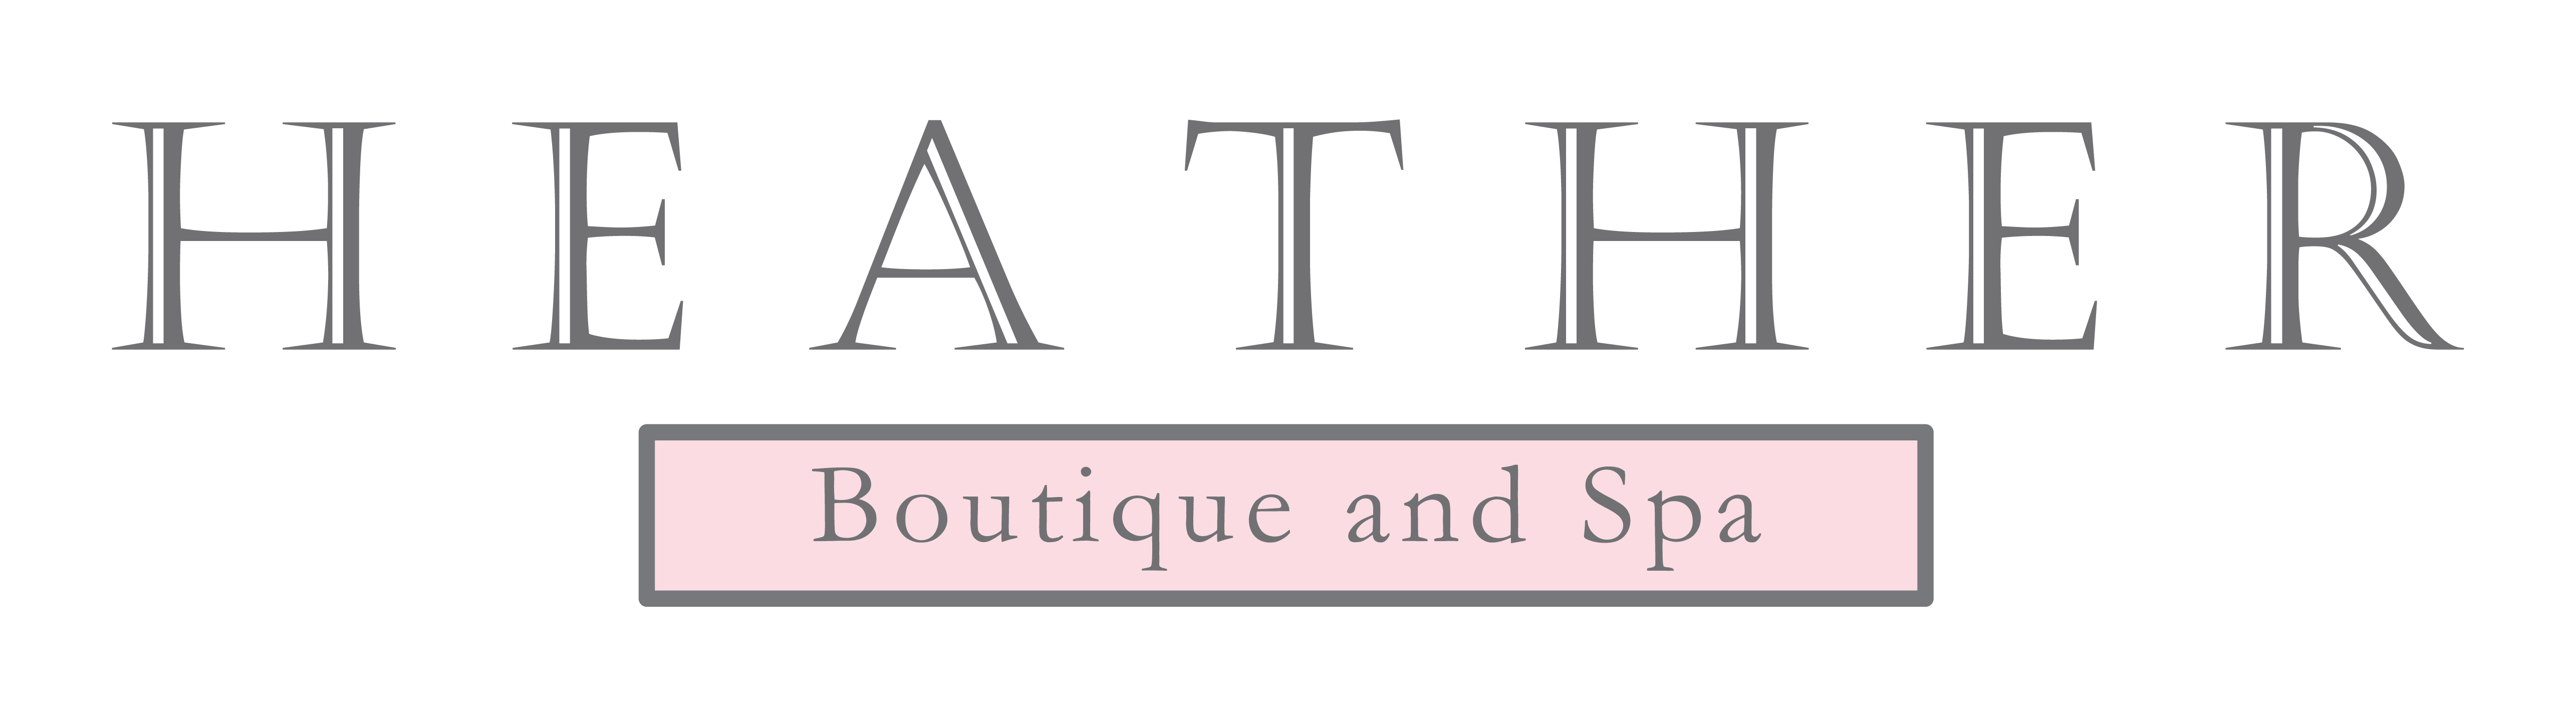 Heather Boutique & Spa